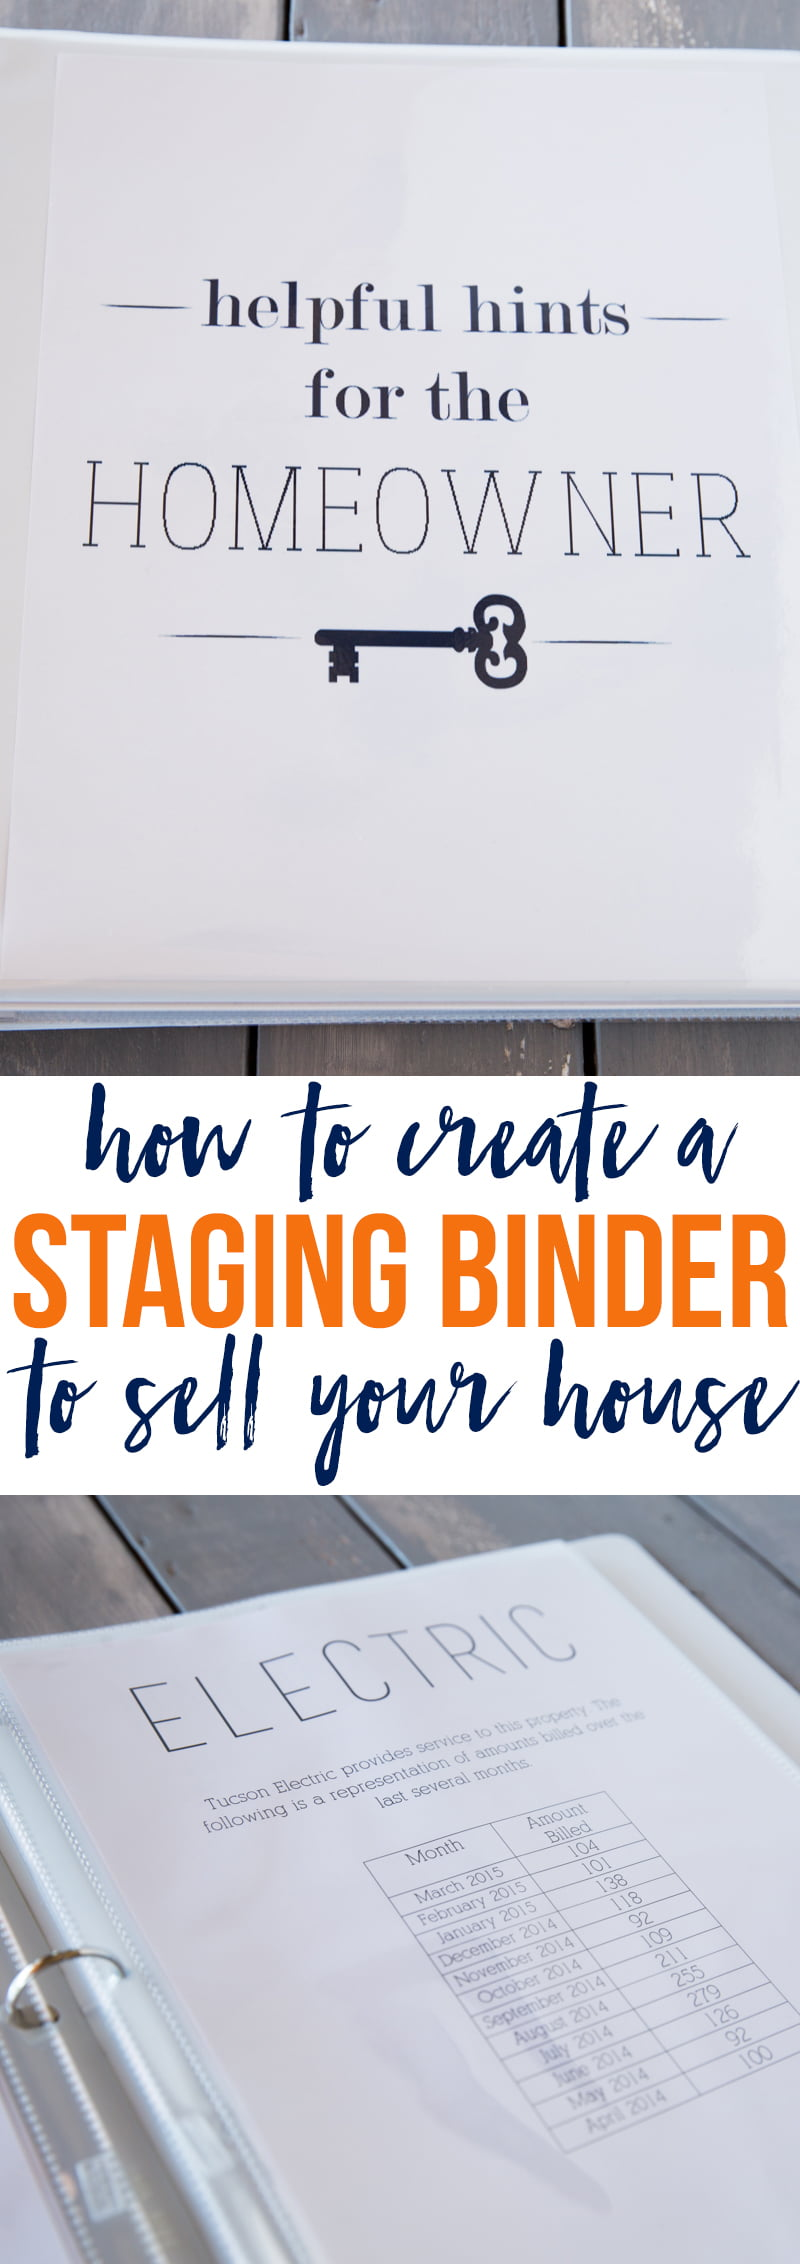 Printable title pages for creating a staging binder to sell your house fast!